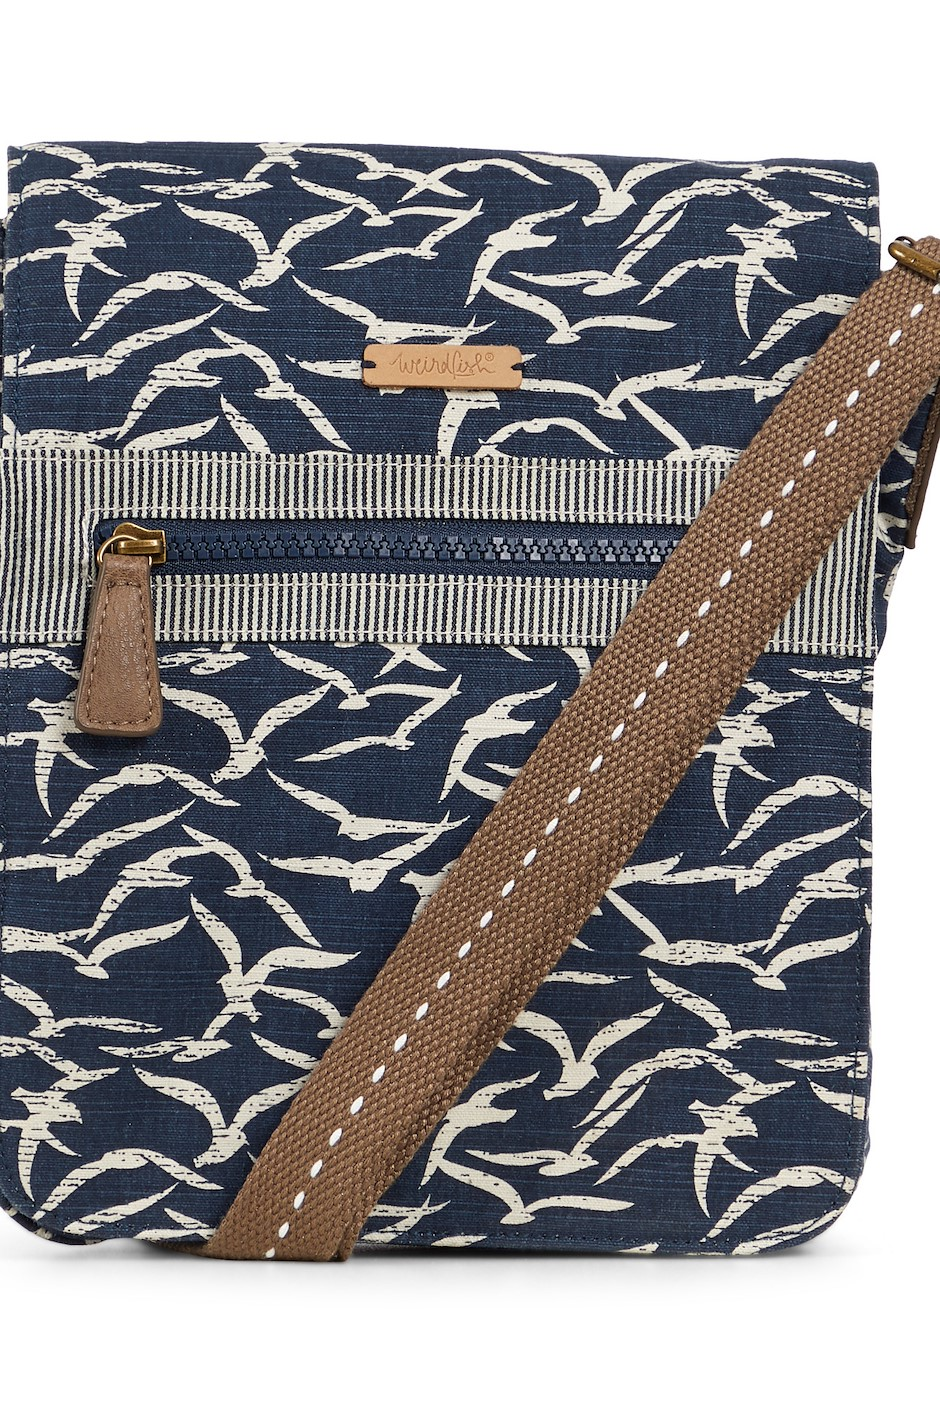 Hallie Patterned Cross Body Bag Dark Navy